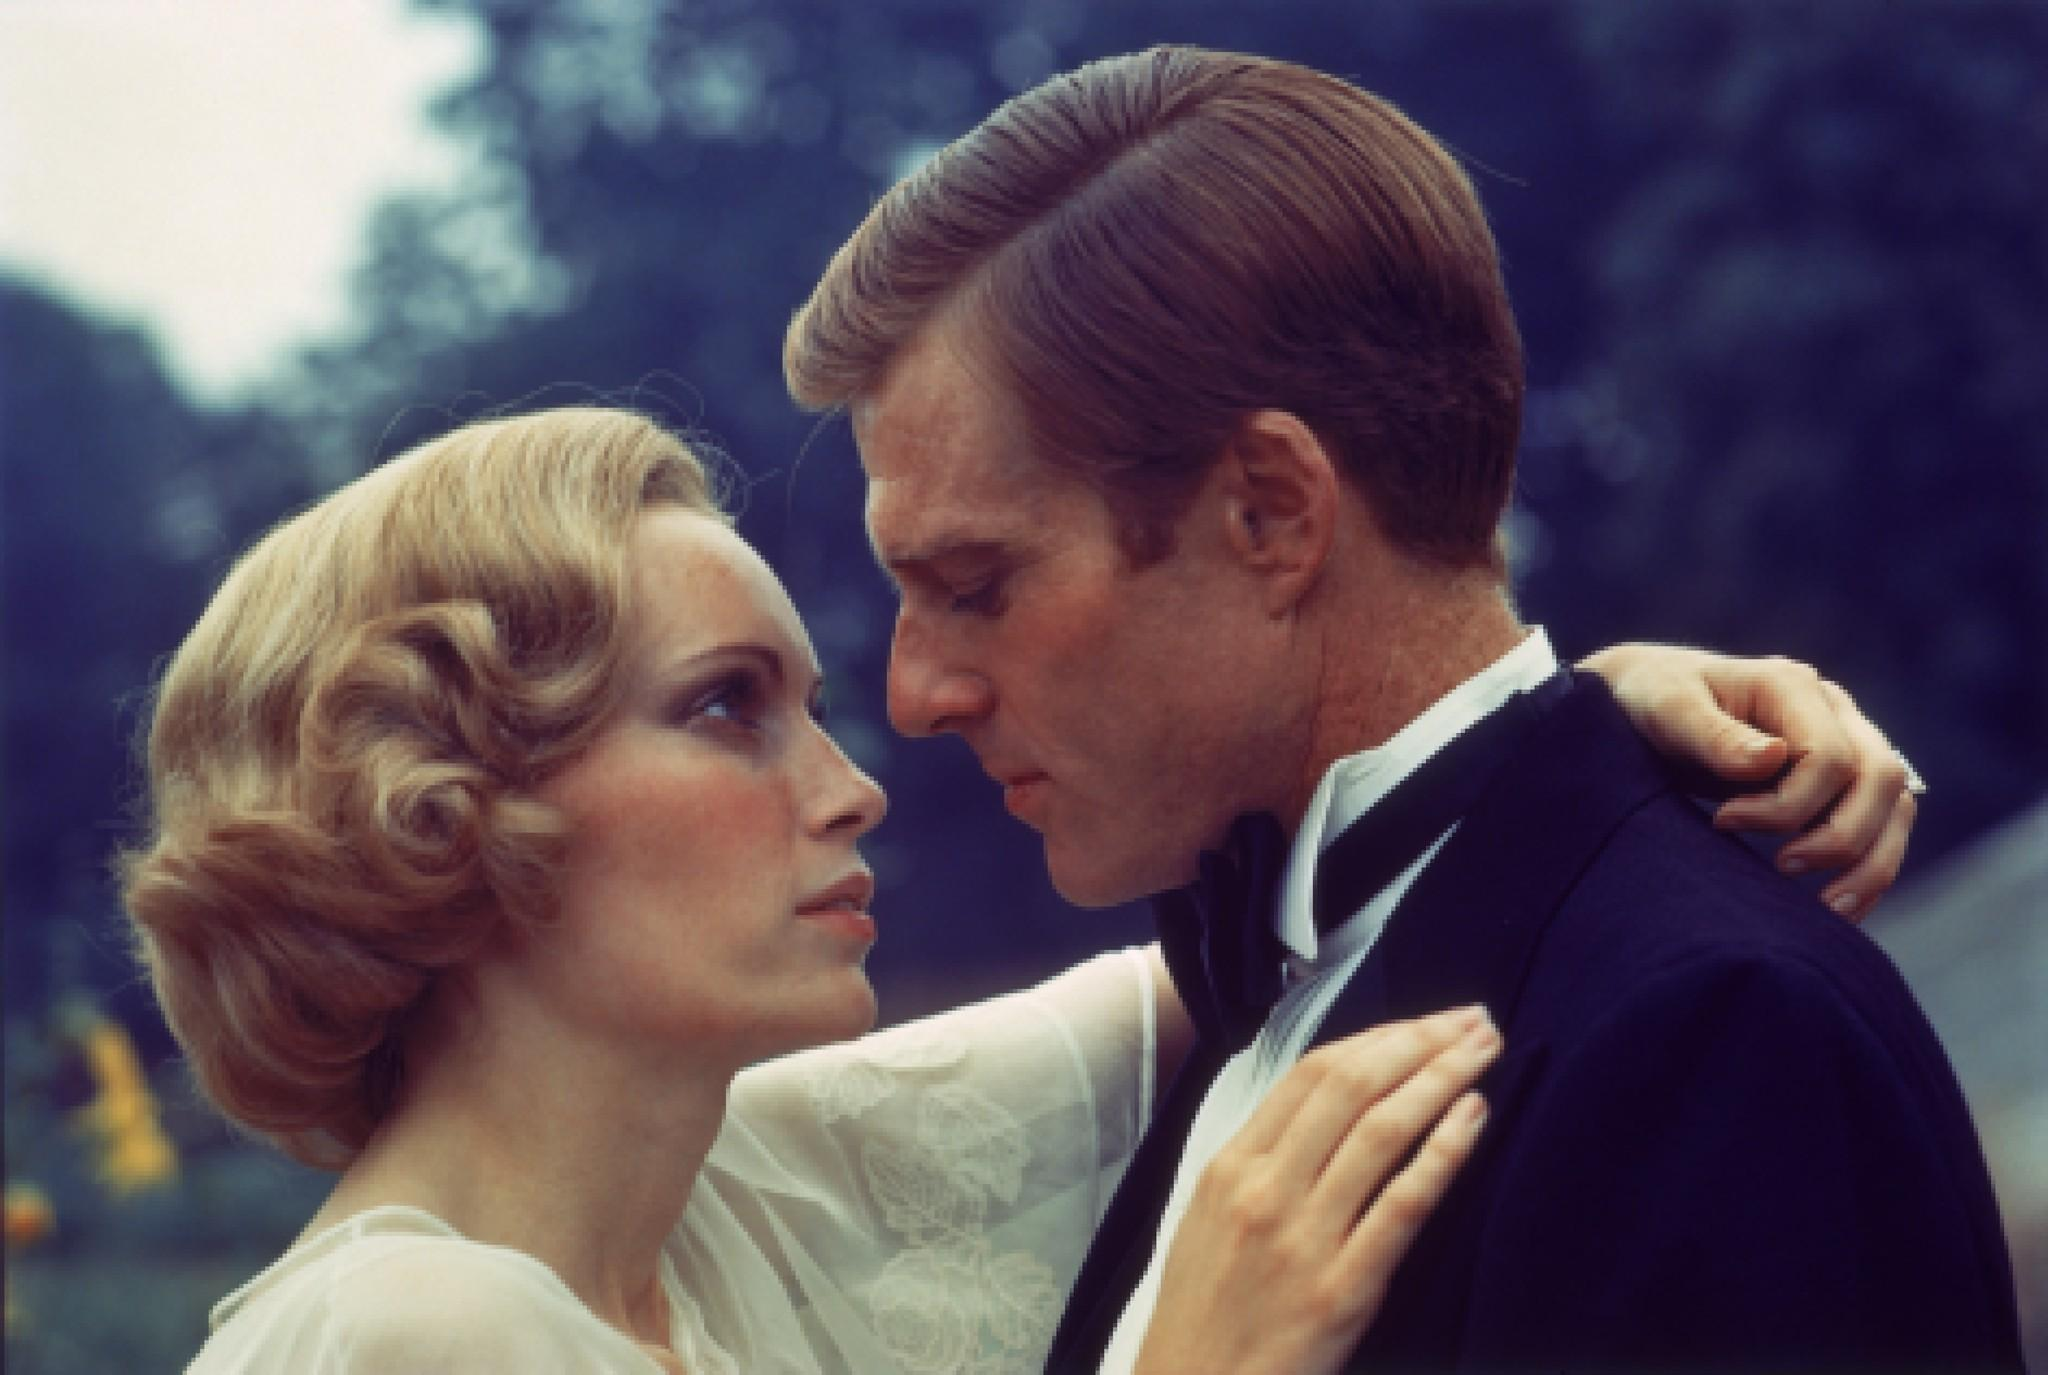 Robert-Redford-Great-Gatsby-Photo-1974-Hair